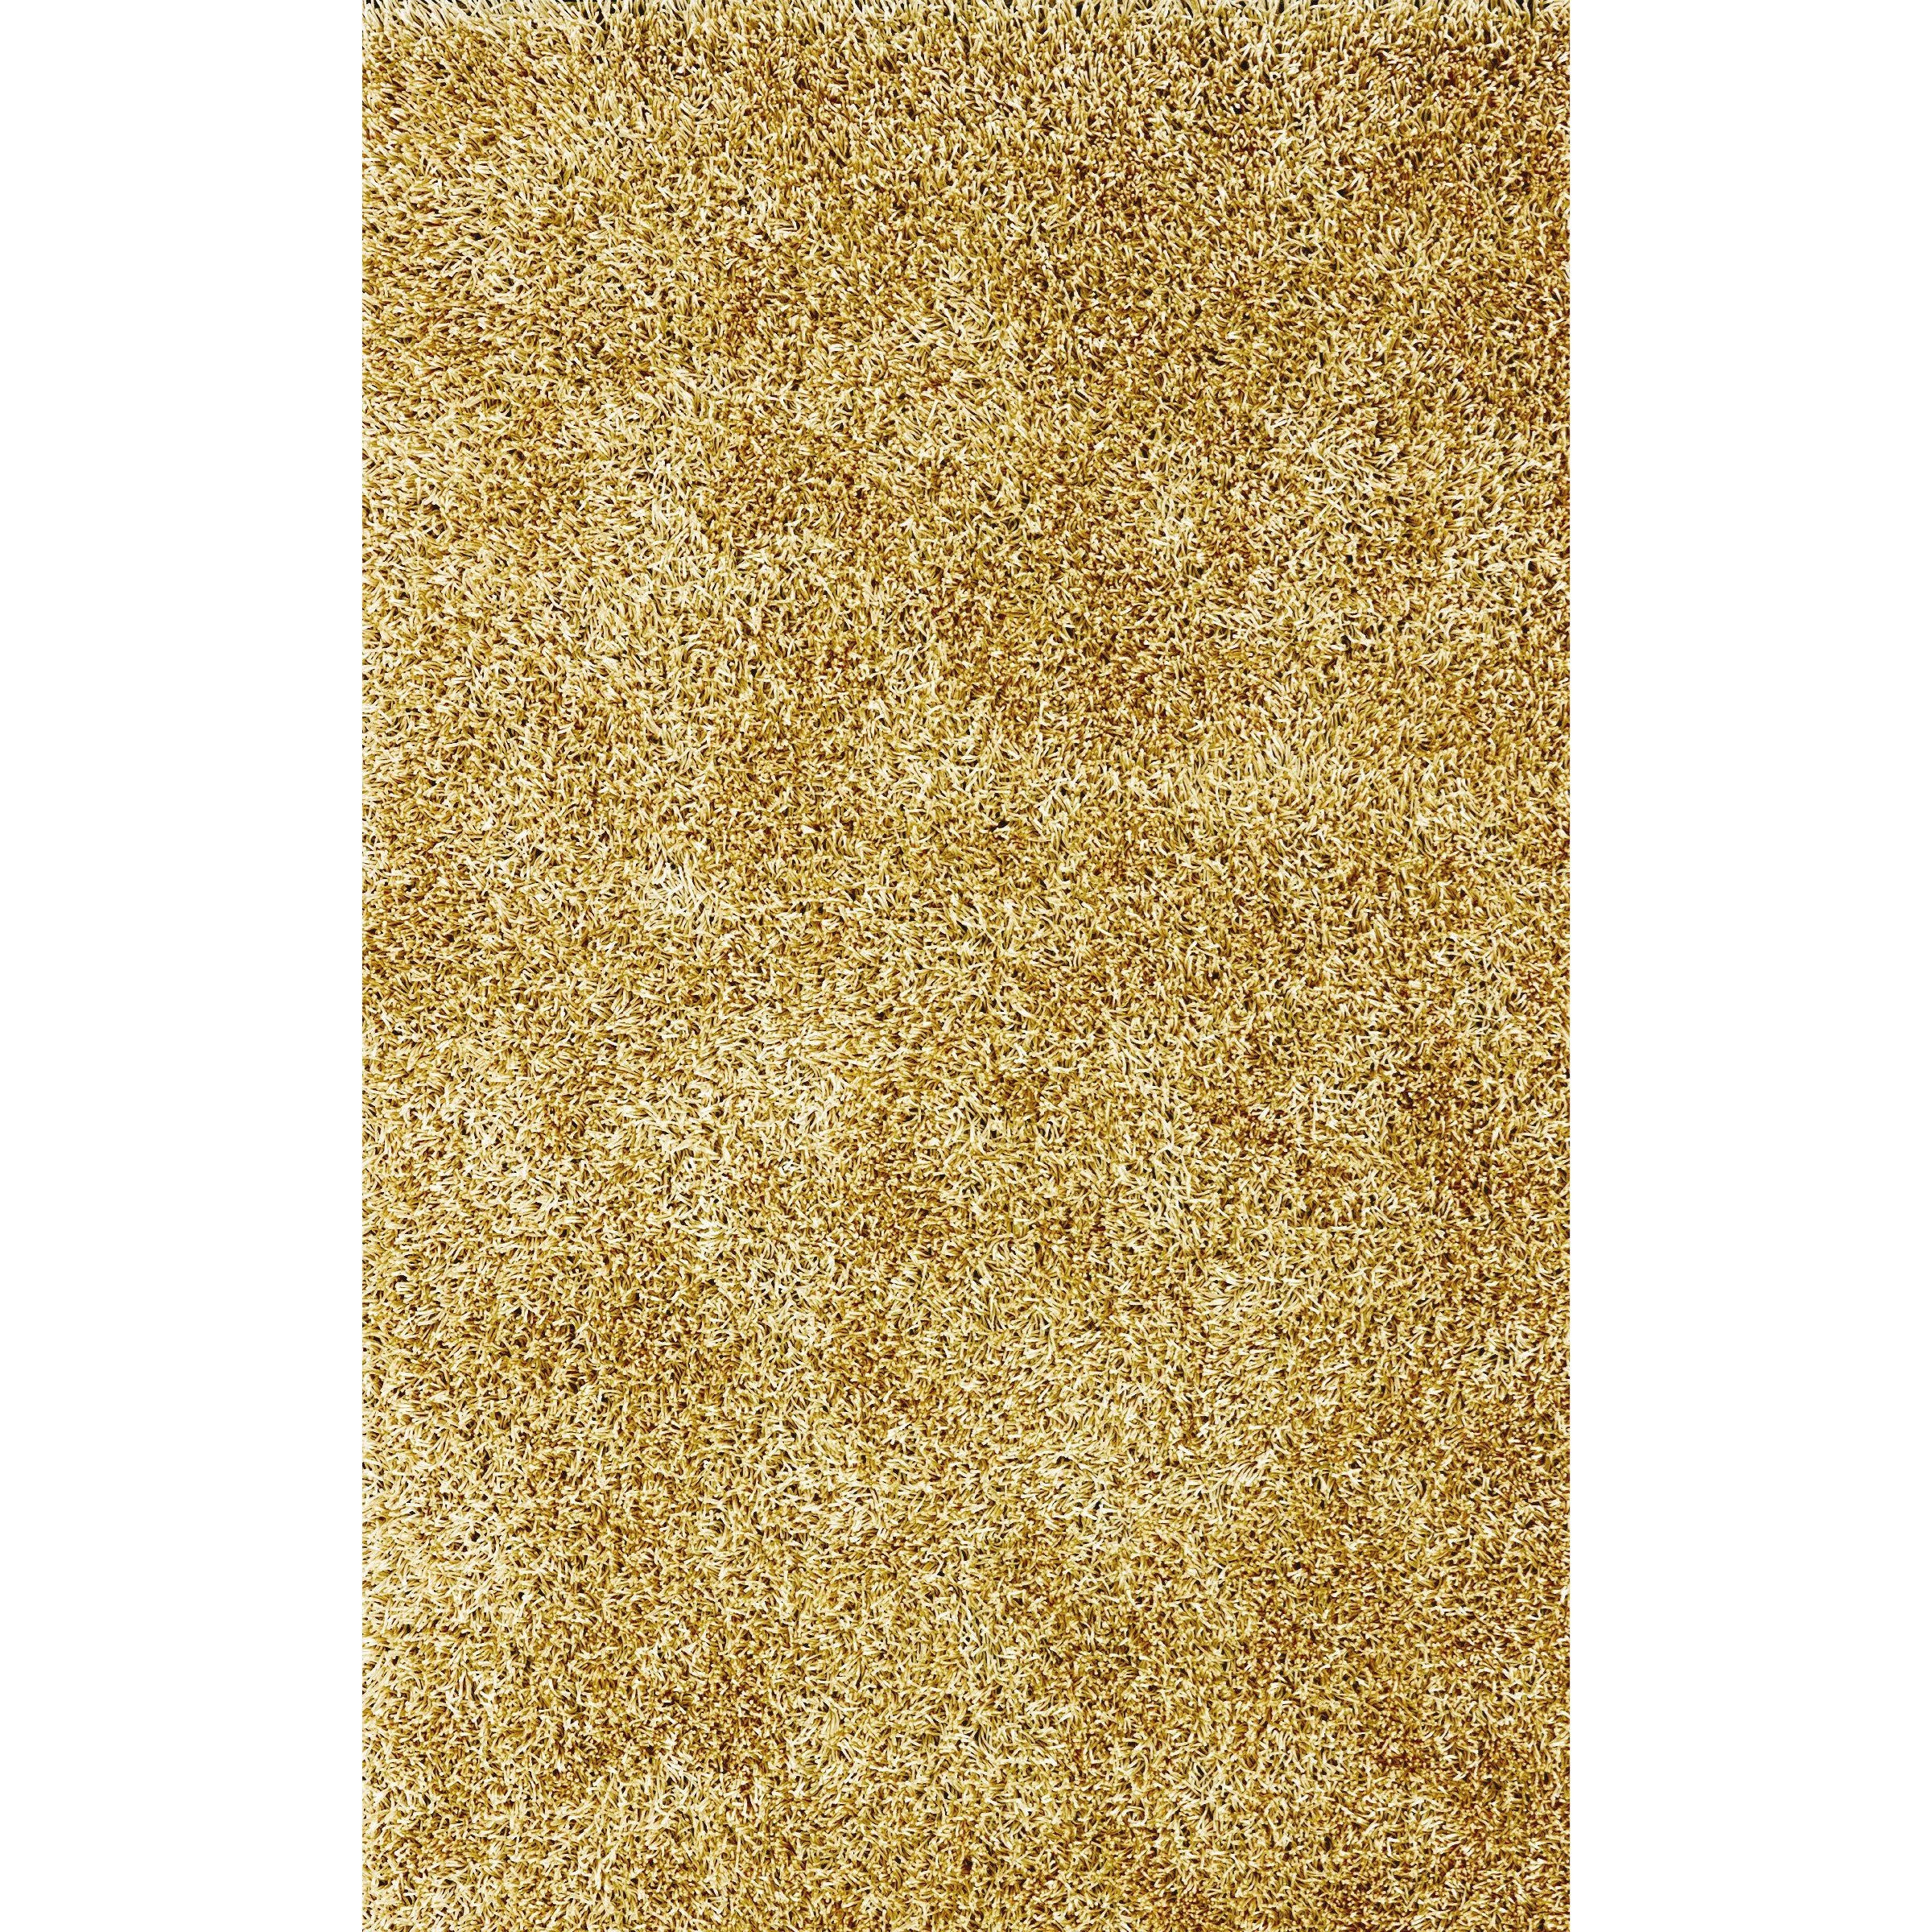 Dalyn Illusions Beige 8'X10' Rug - Item Number: IL69BE8X10